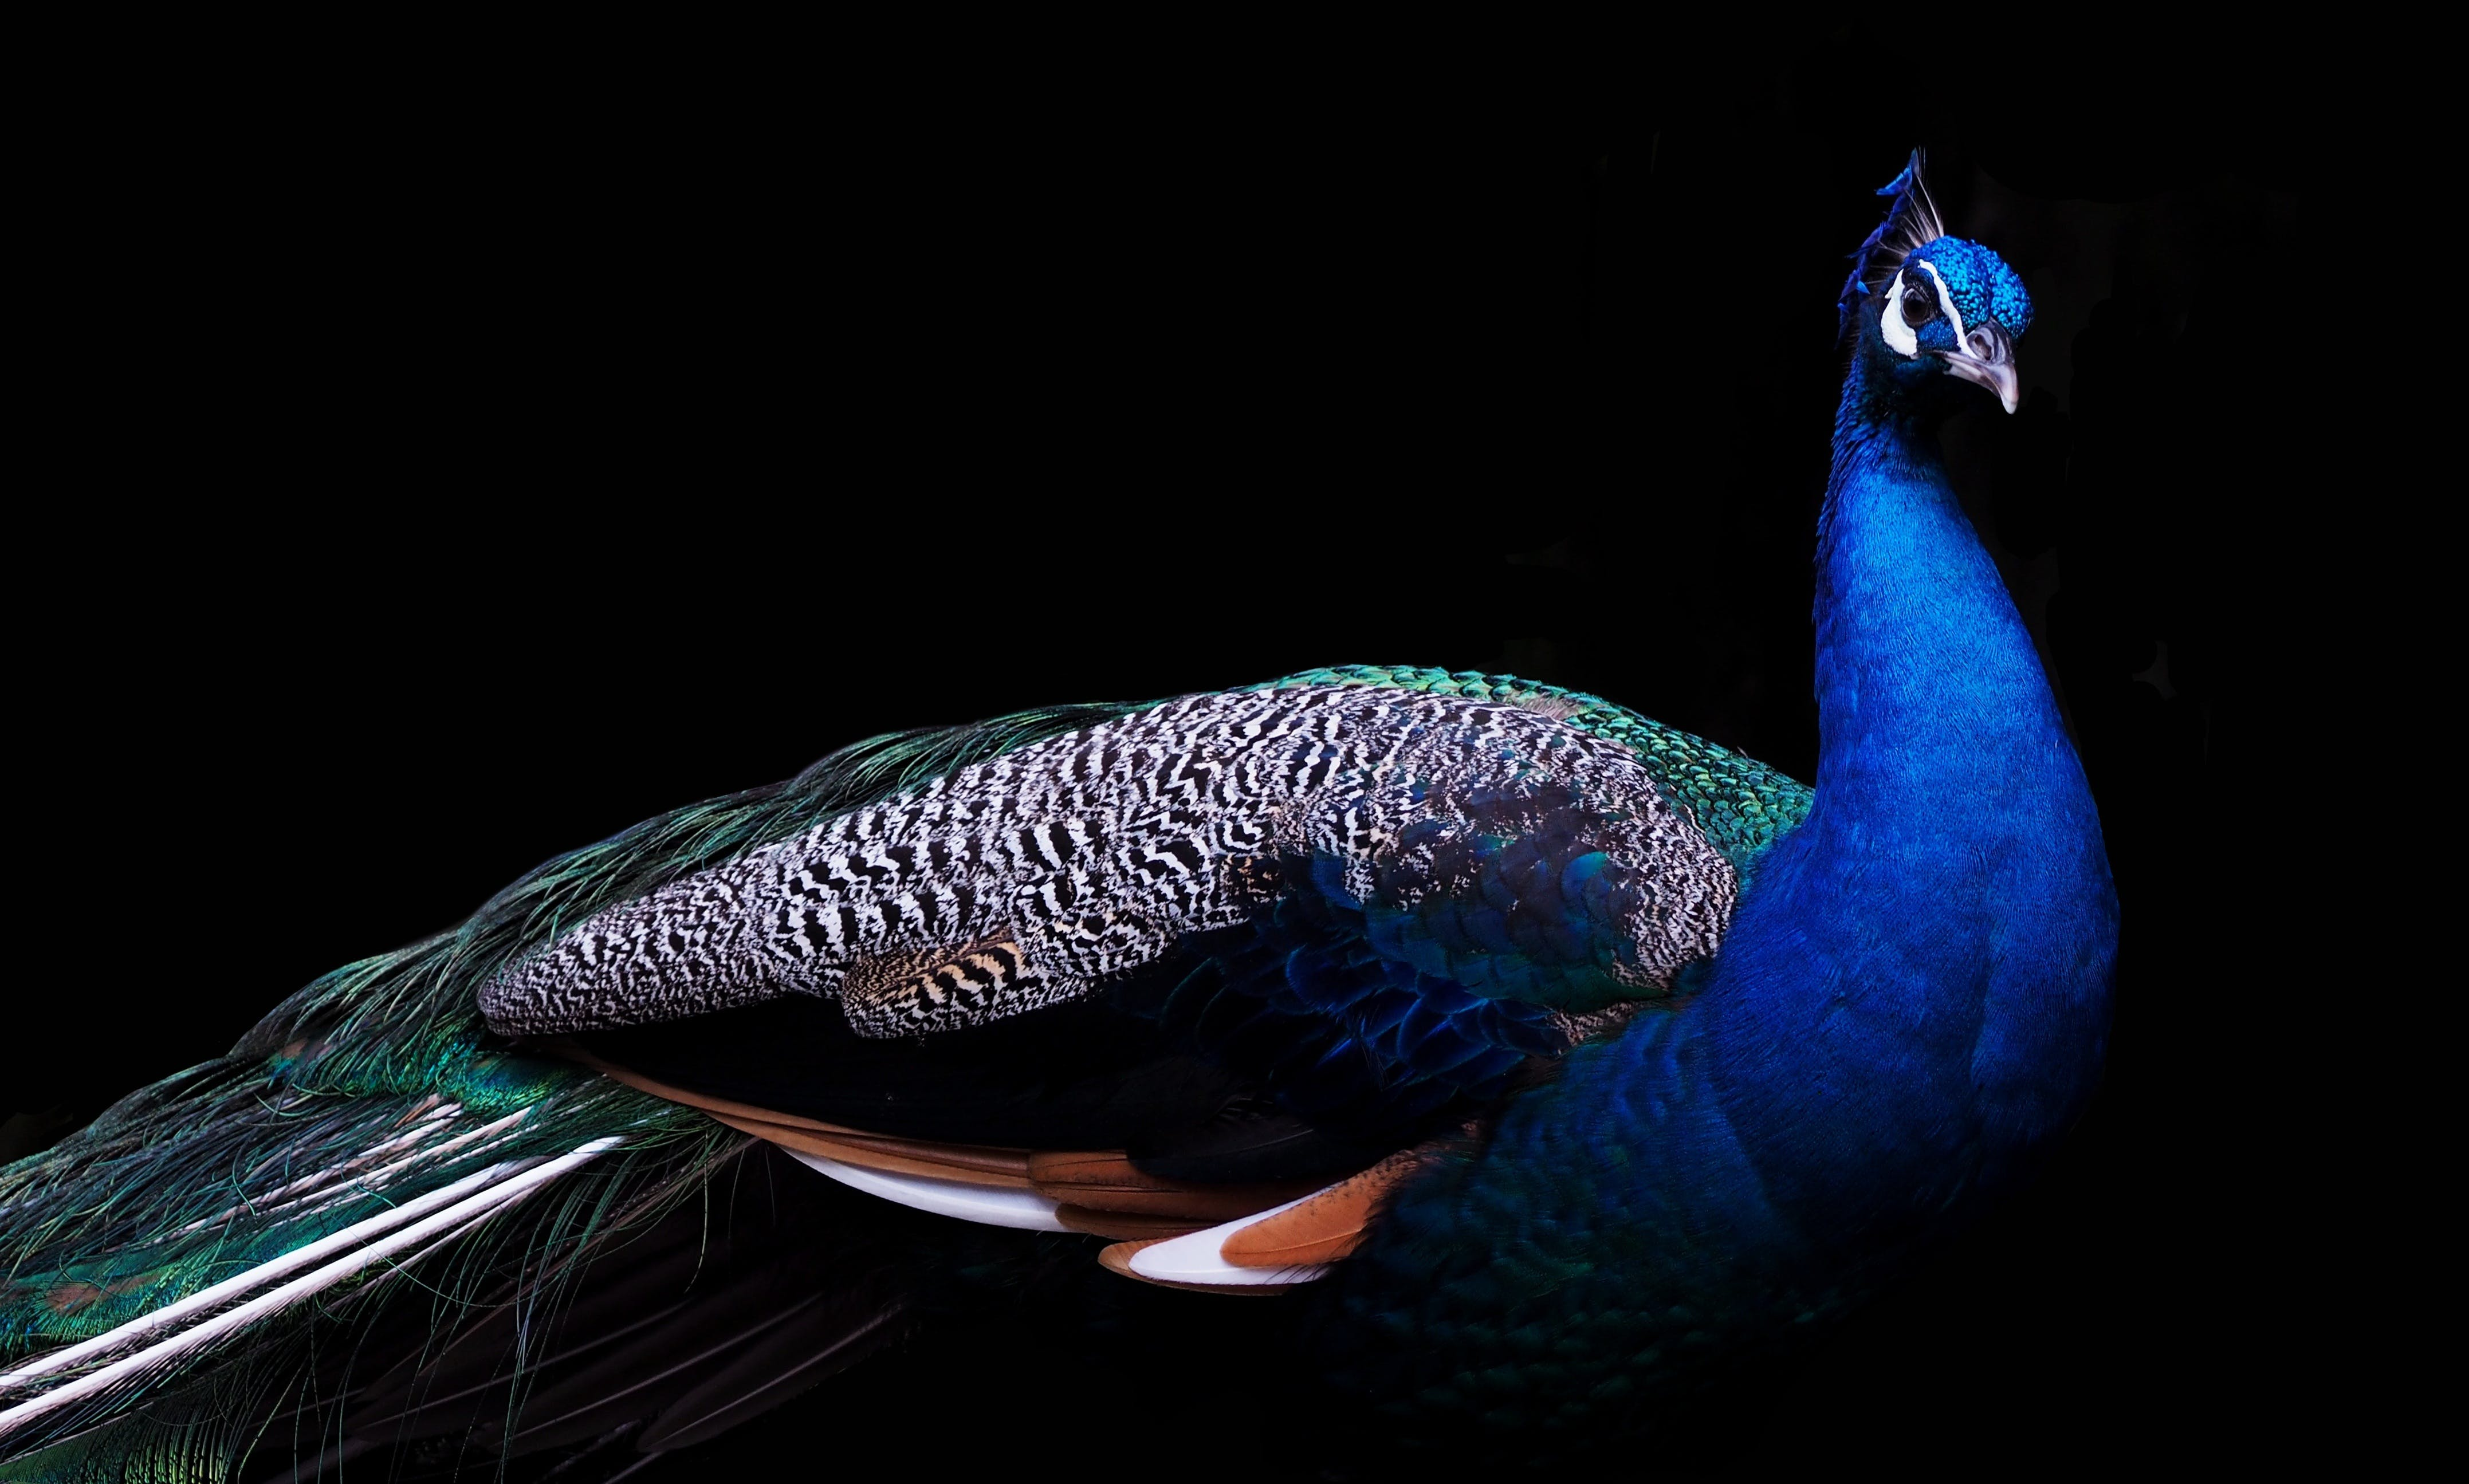 Blue and Brown Peacock